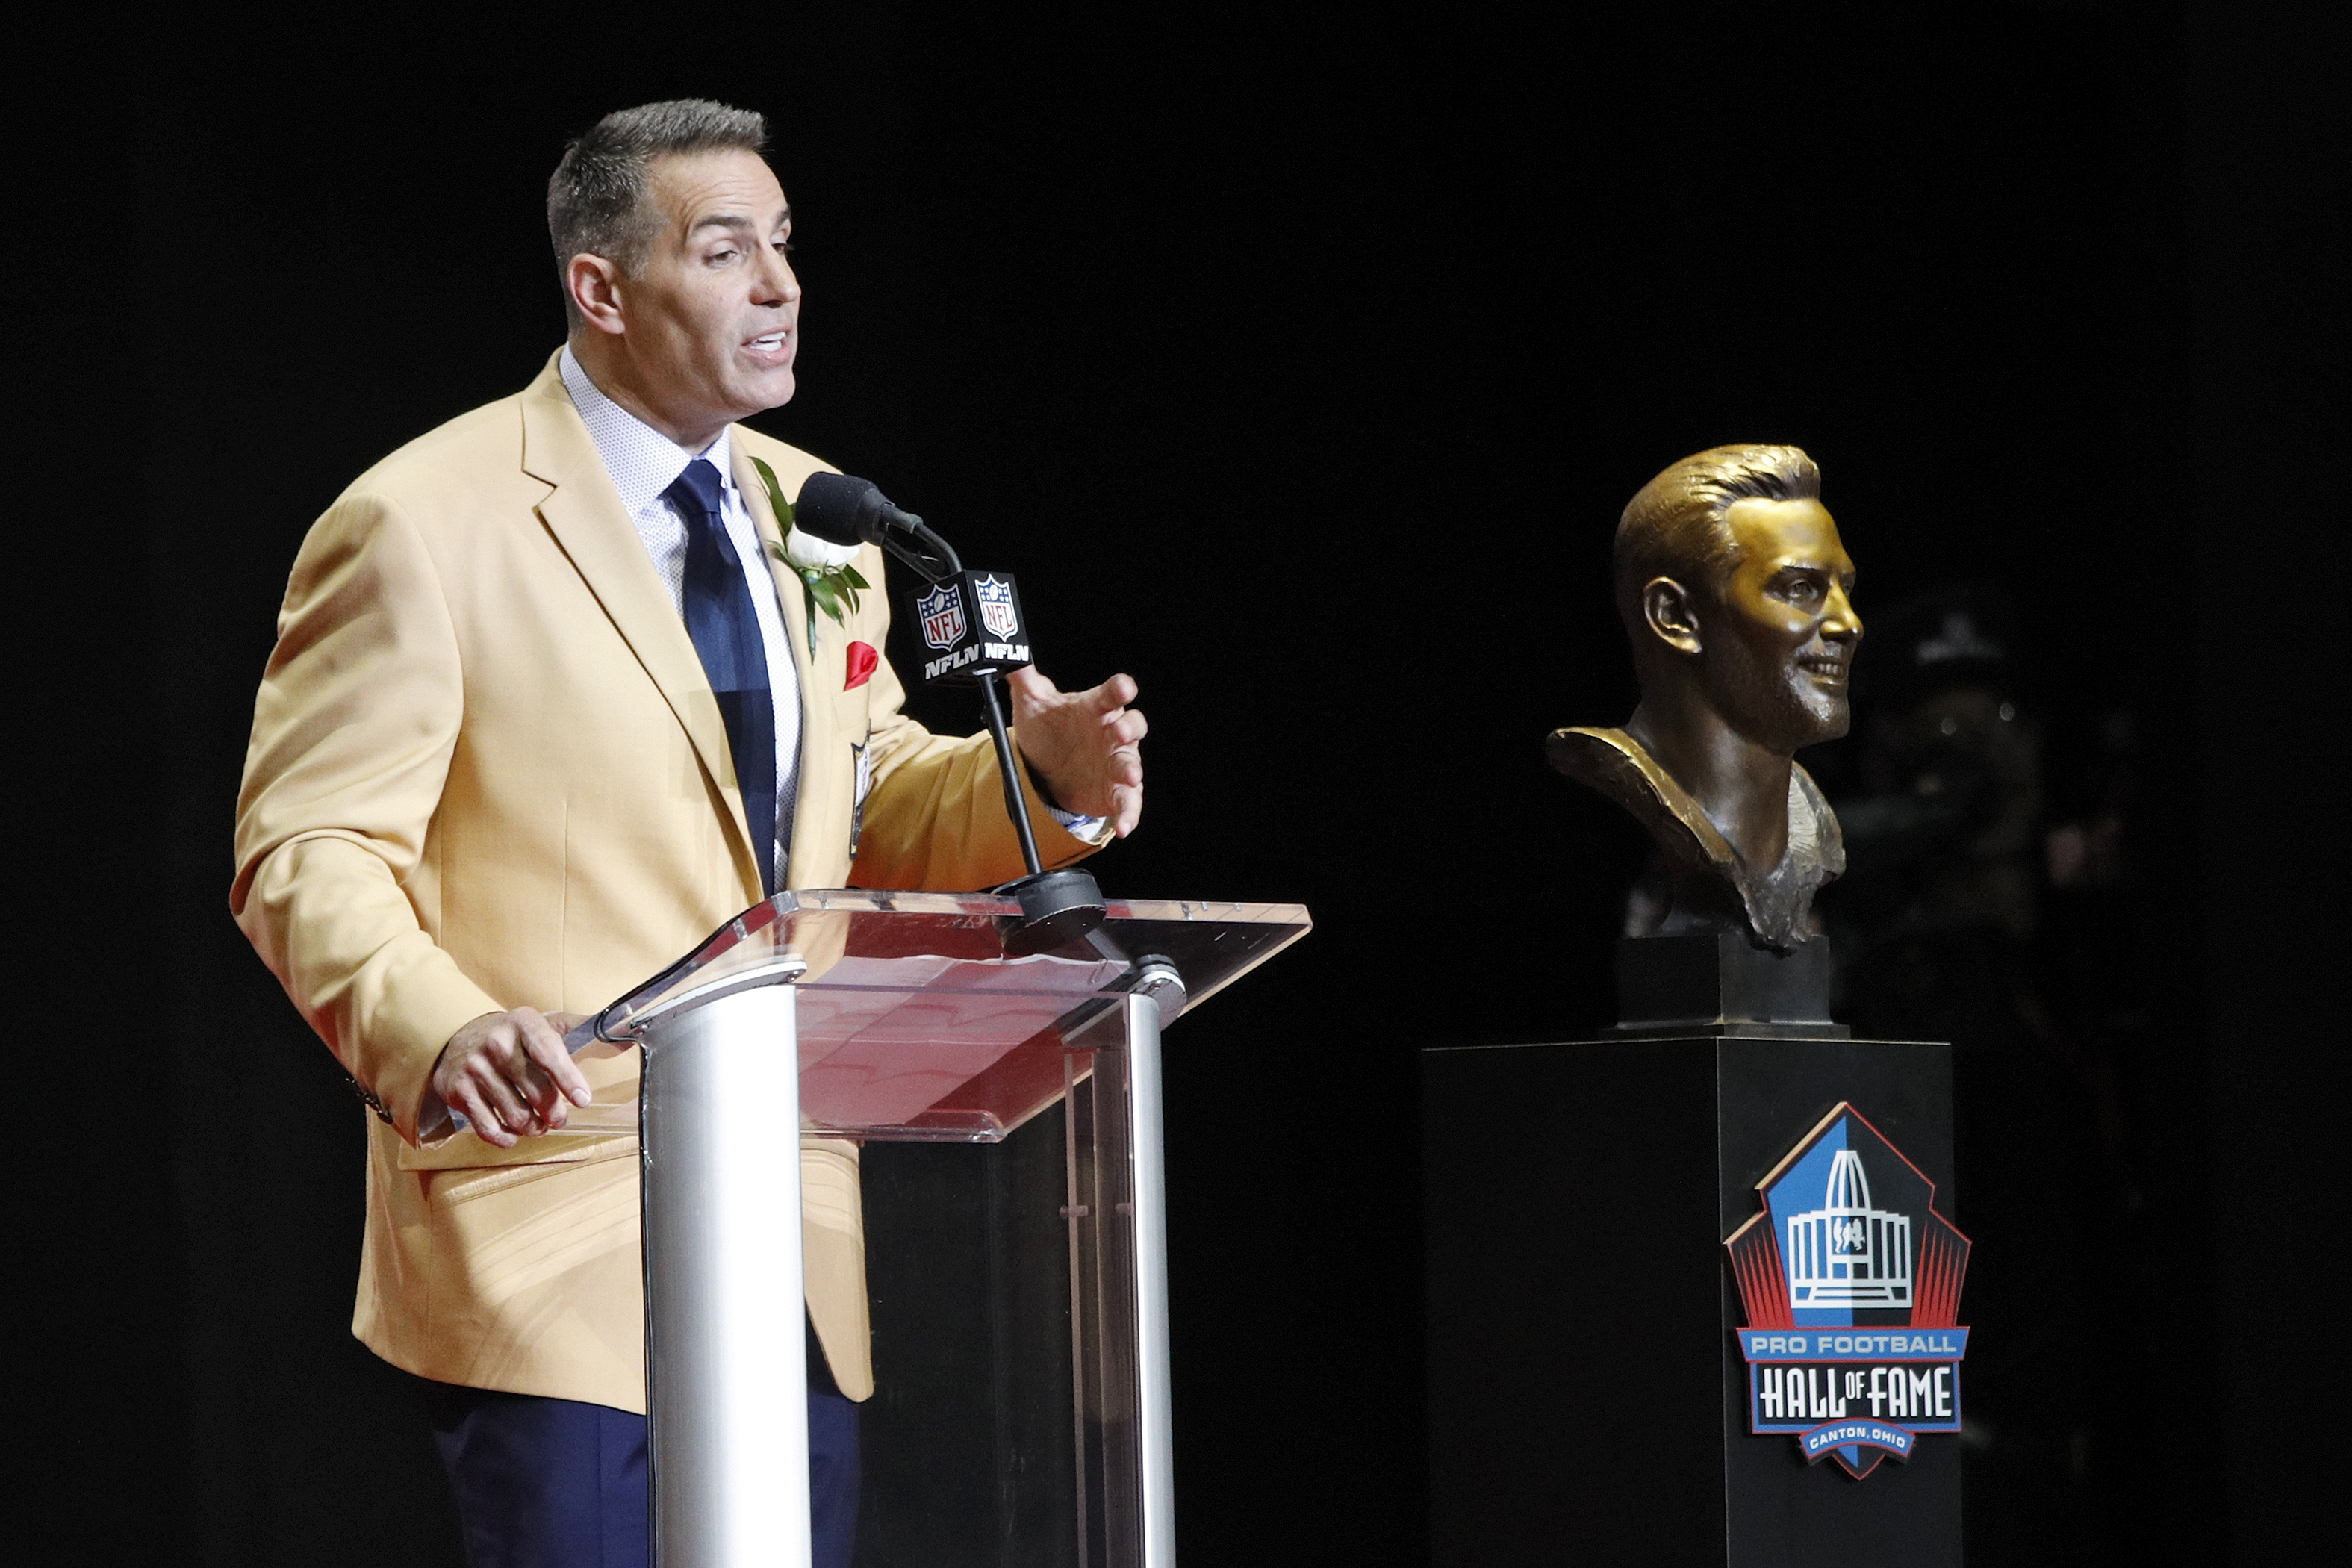 Kurt Warner famously went from working in a grocery store to the Pro Football Hall of Fame. That isn't the only hall where Warner is a member.